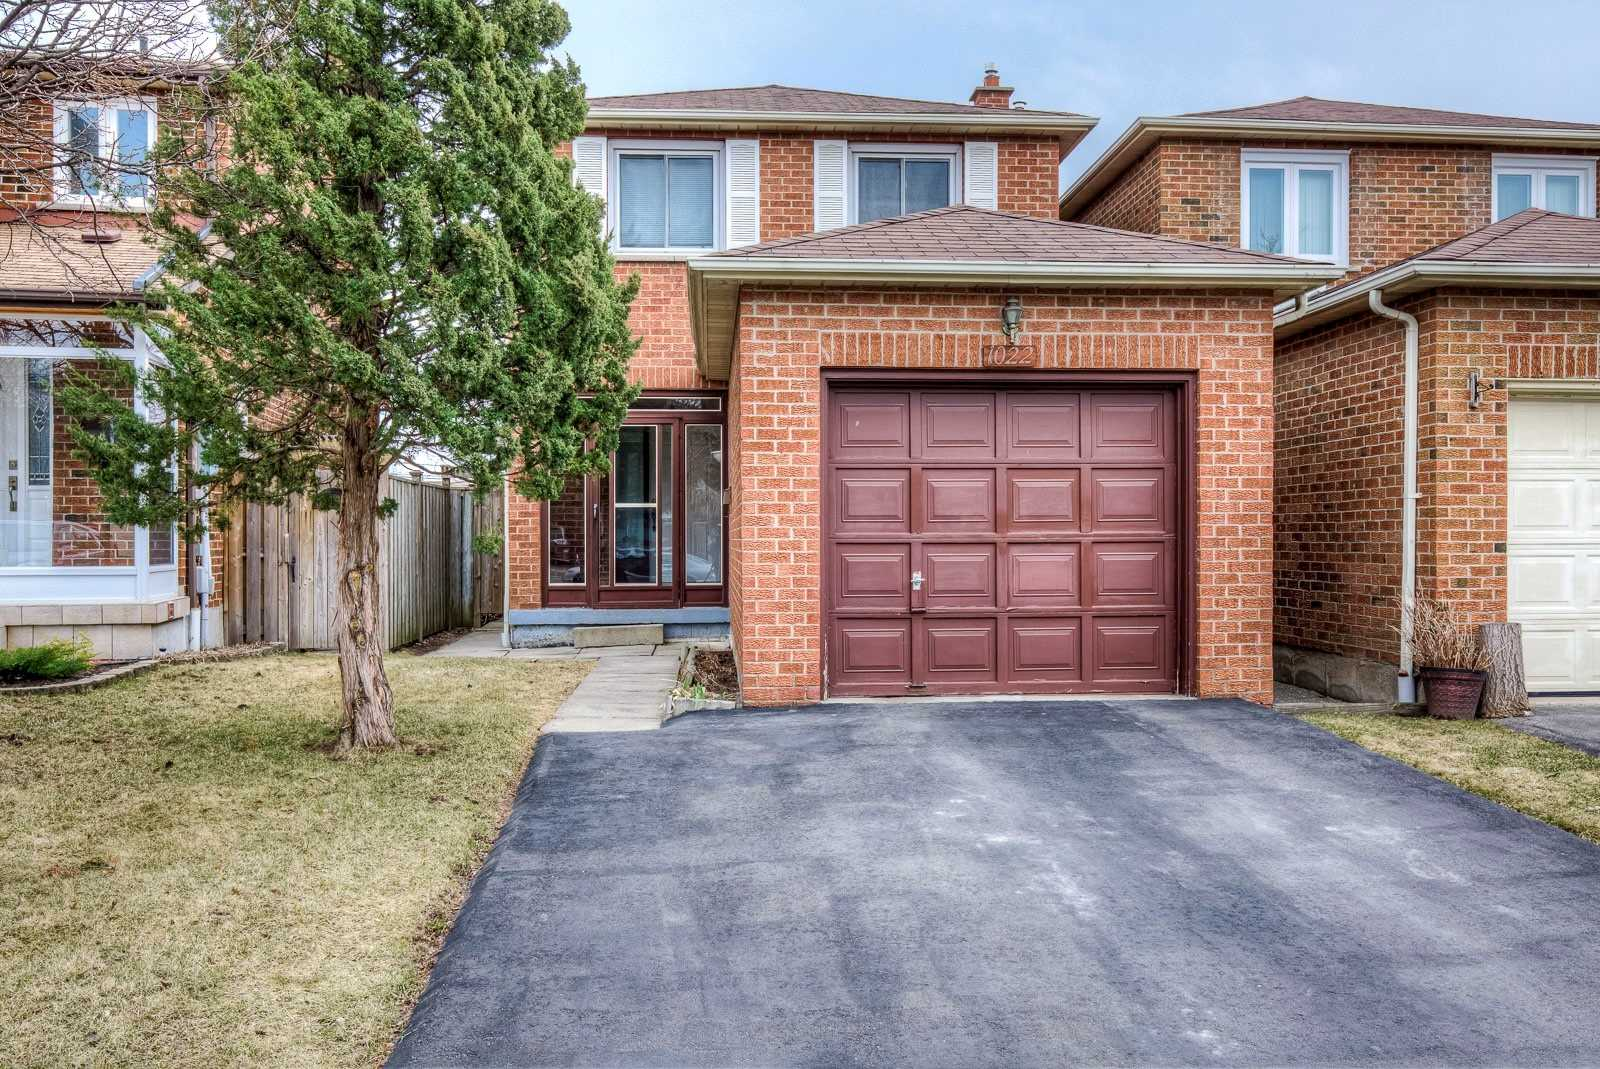 1022 Whispering Wood Dr, Mississauga W4408433